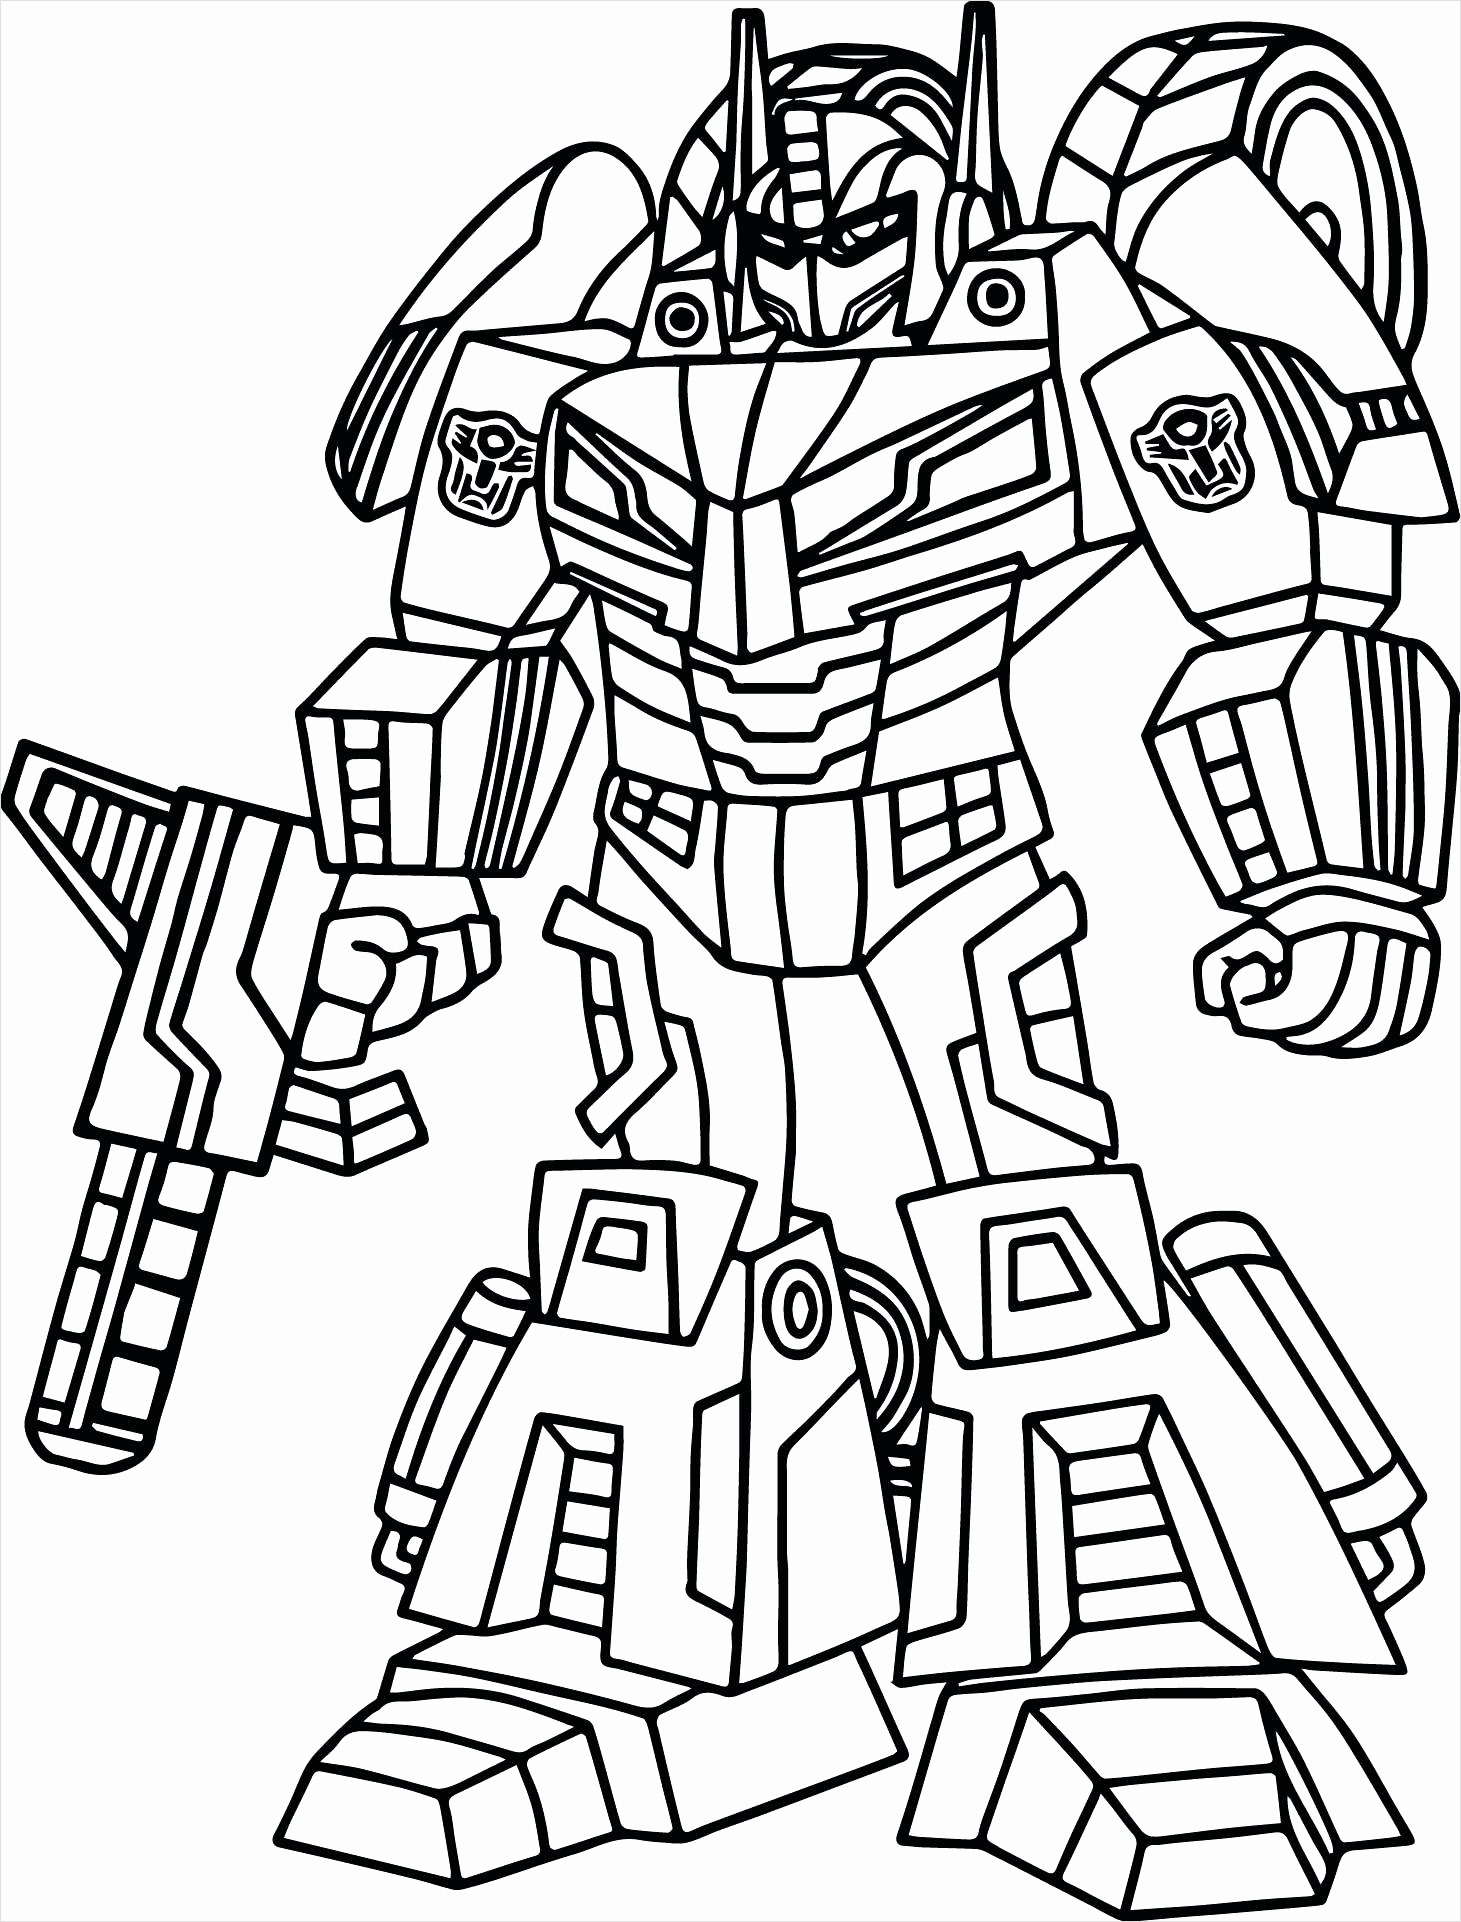 21 Bumblebee Transformer Coloring Pages Printable Gallery ...